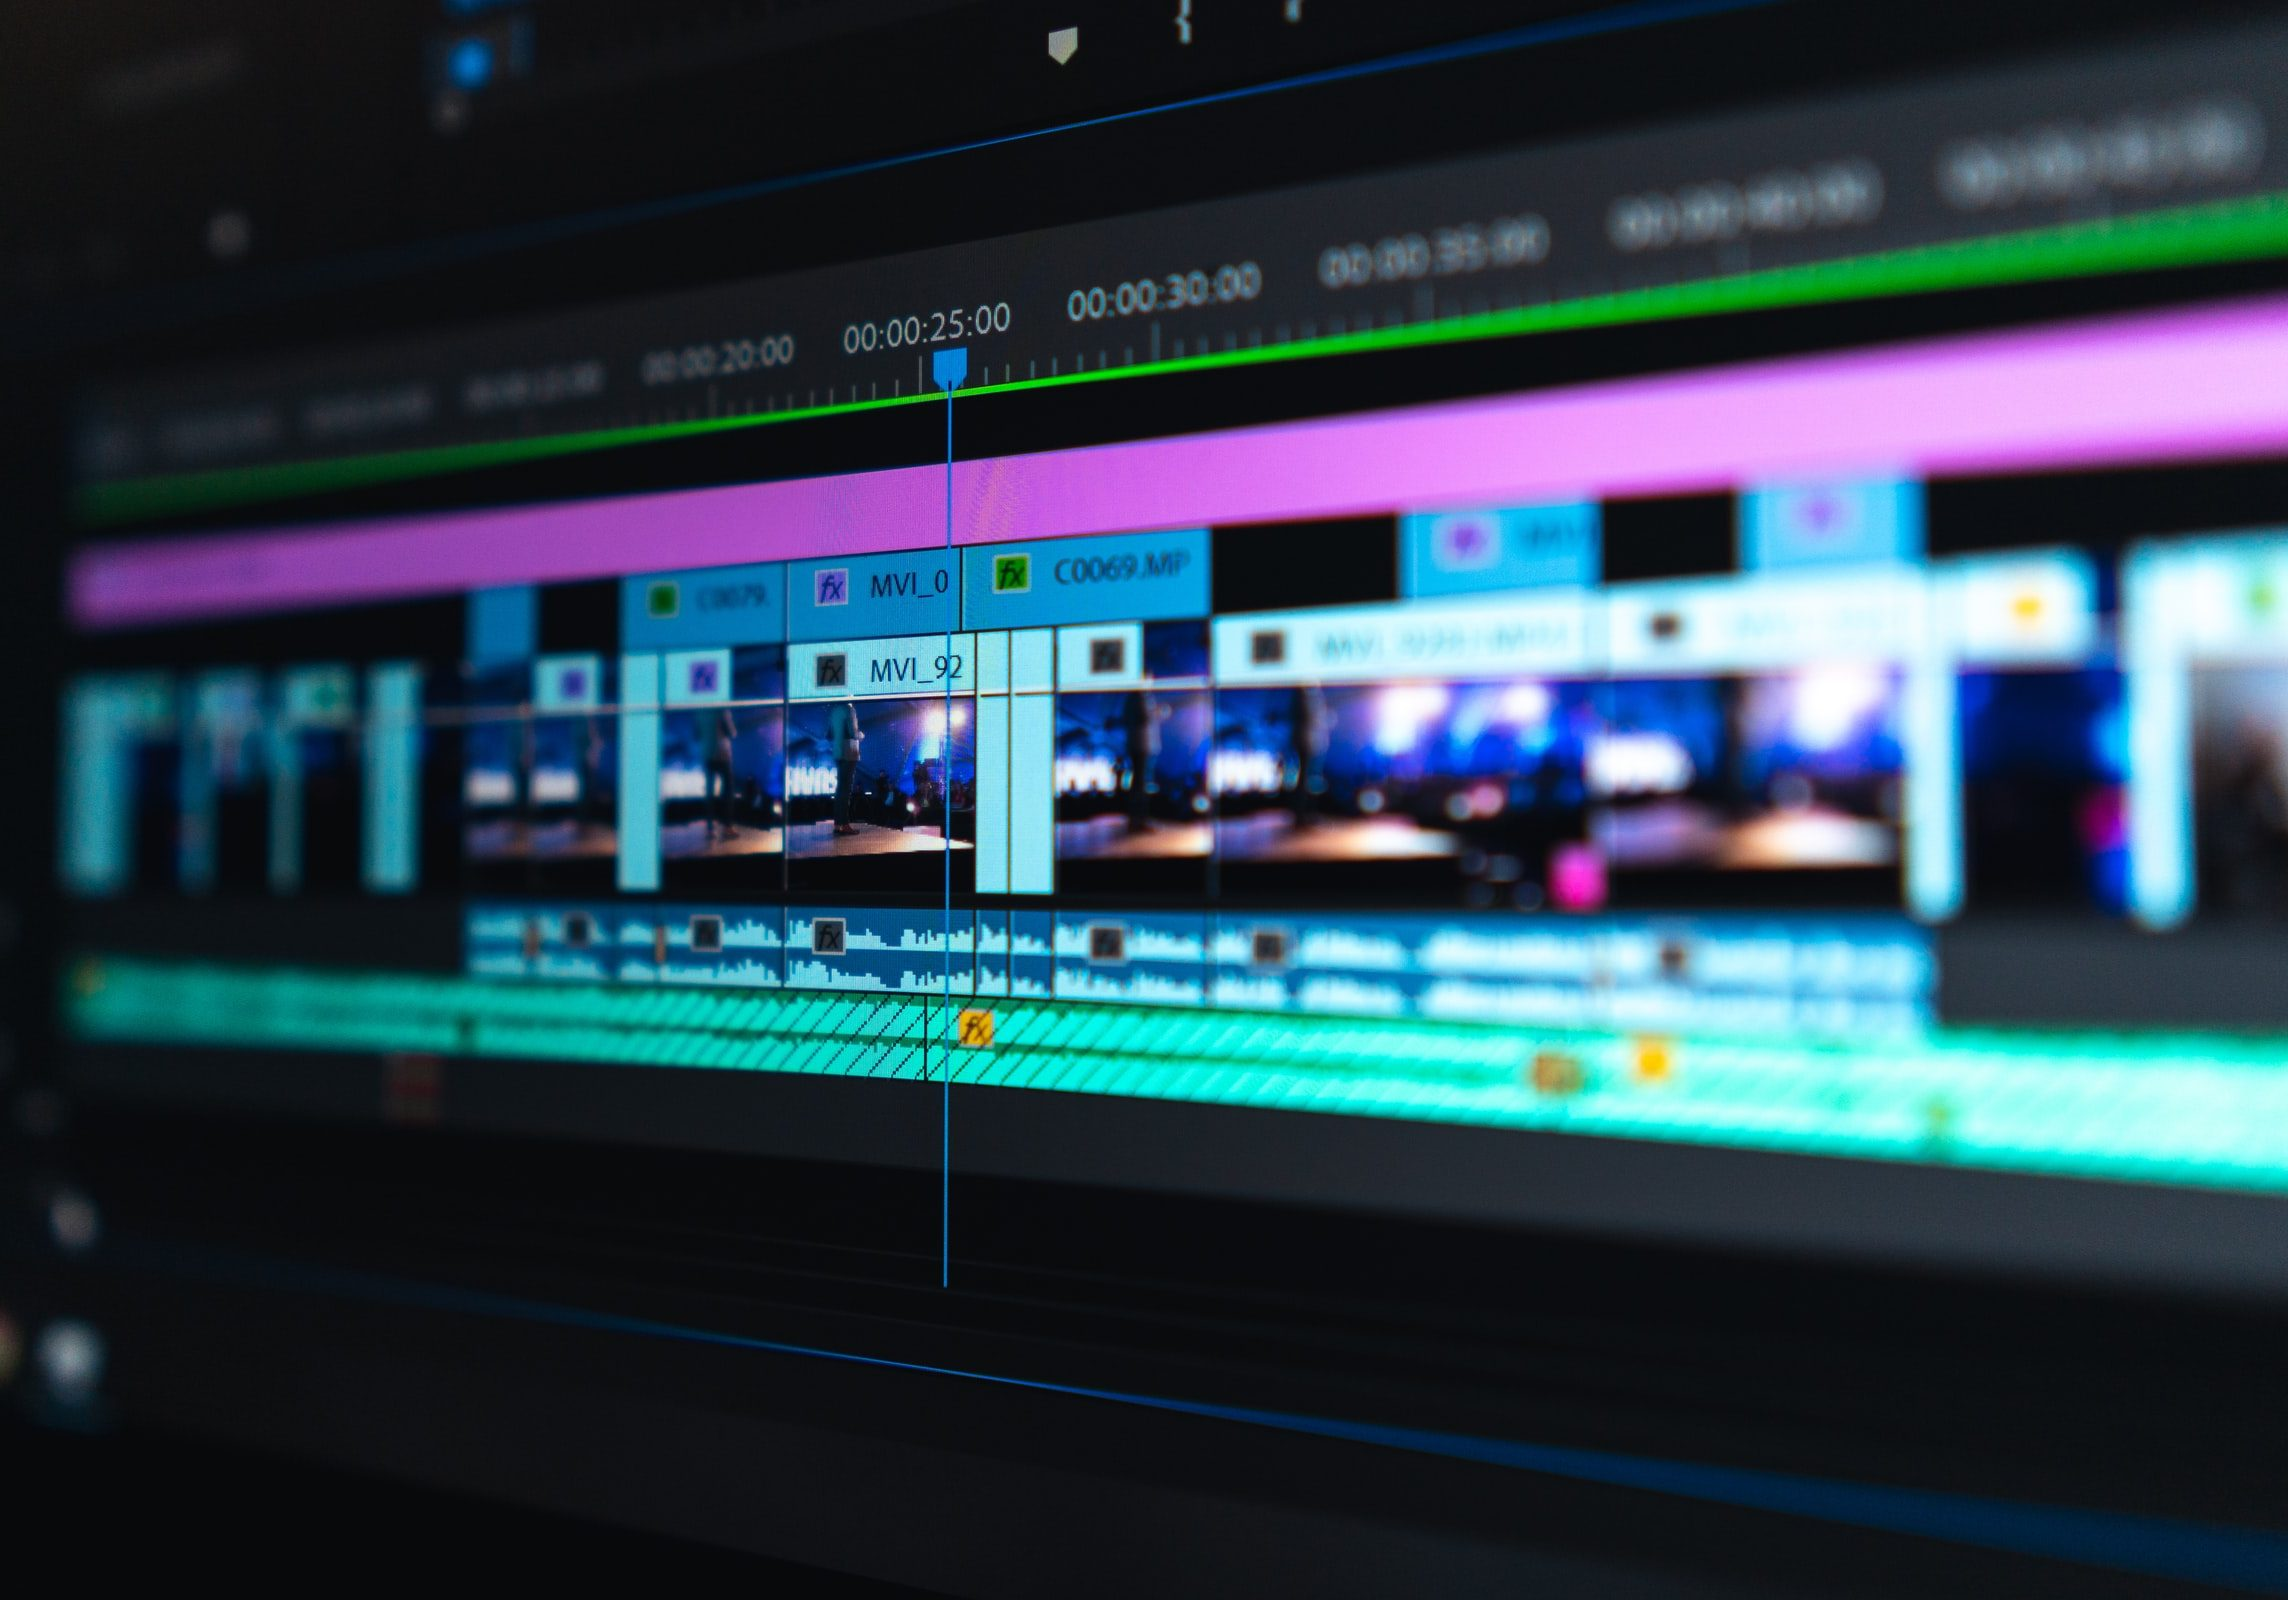 Photograph of video production project open in video editing software